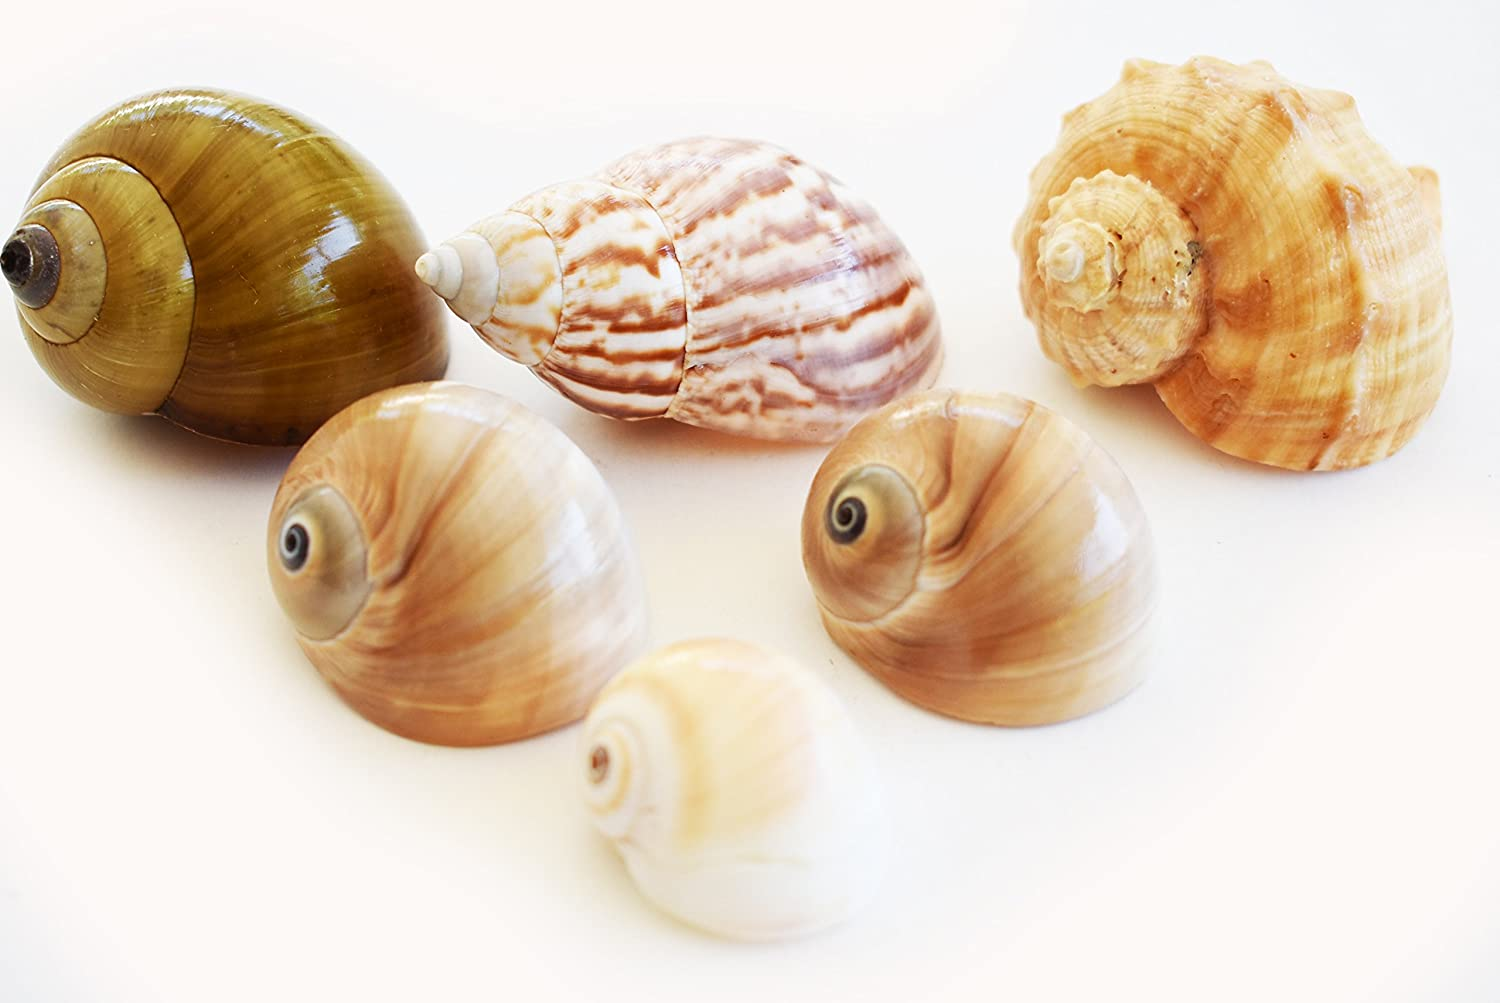 Florida Shells and Gifts Inc. 6 Medium to Large Shell Hermit Crab Changing Set - Select Shells - 3/4-1 1/2+ opening - Land Snail, Moon and Conch Shells